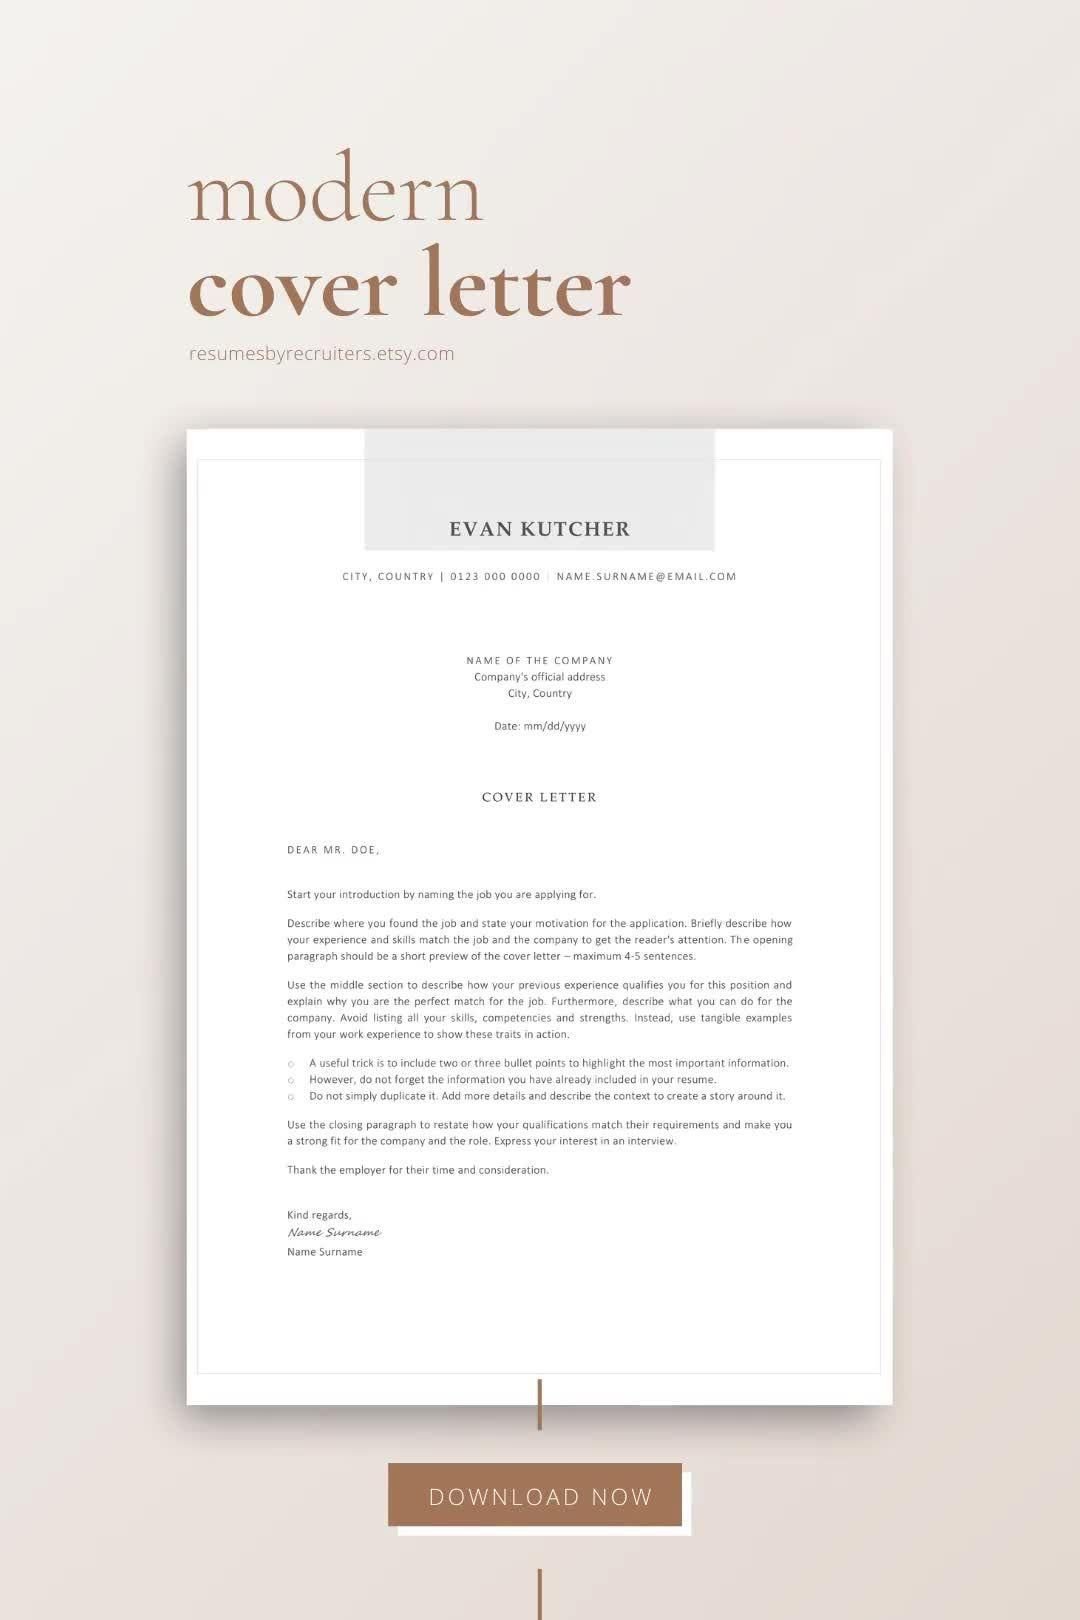 Cover Letter Template with Professional and Modern Templates for a Successful Job Search